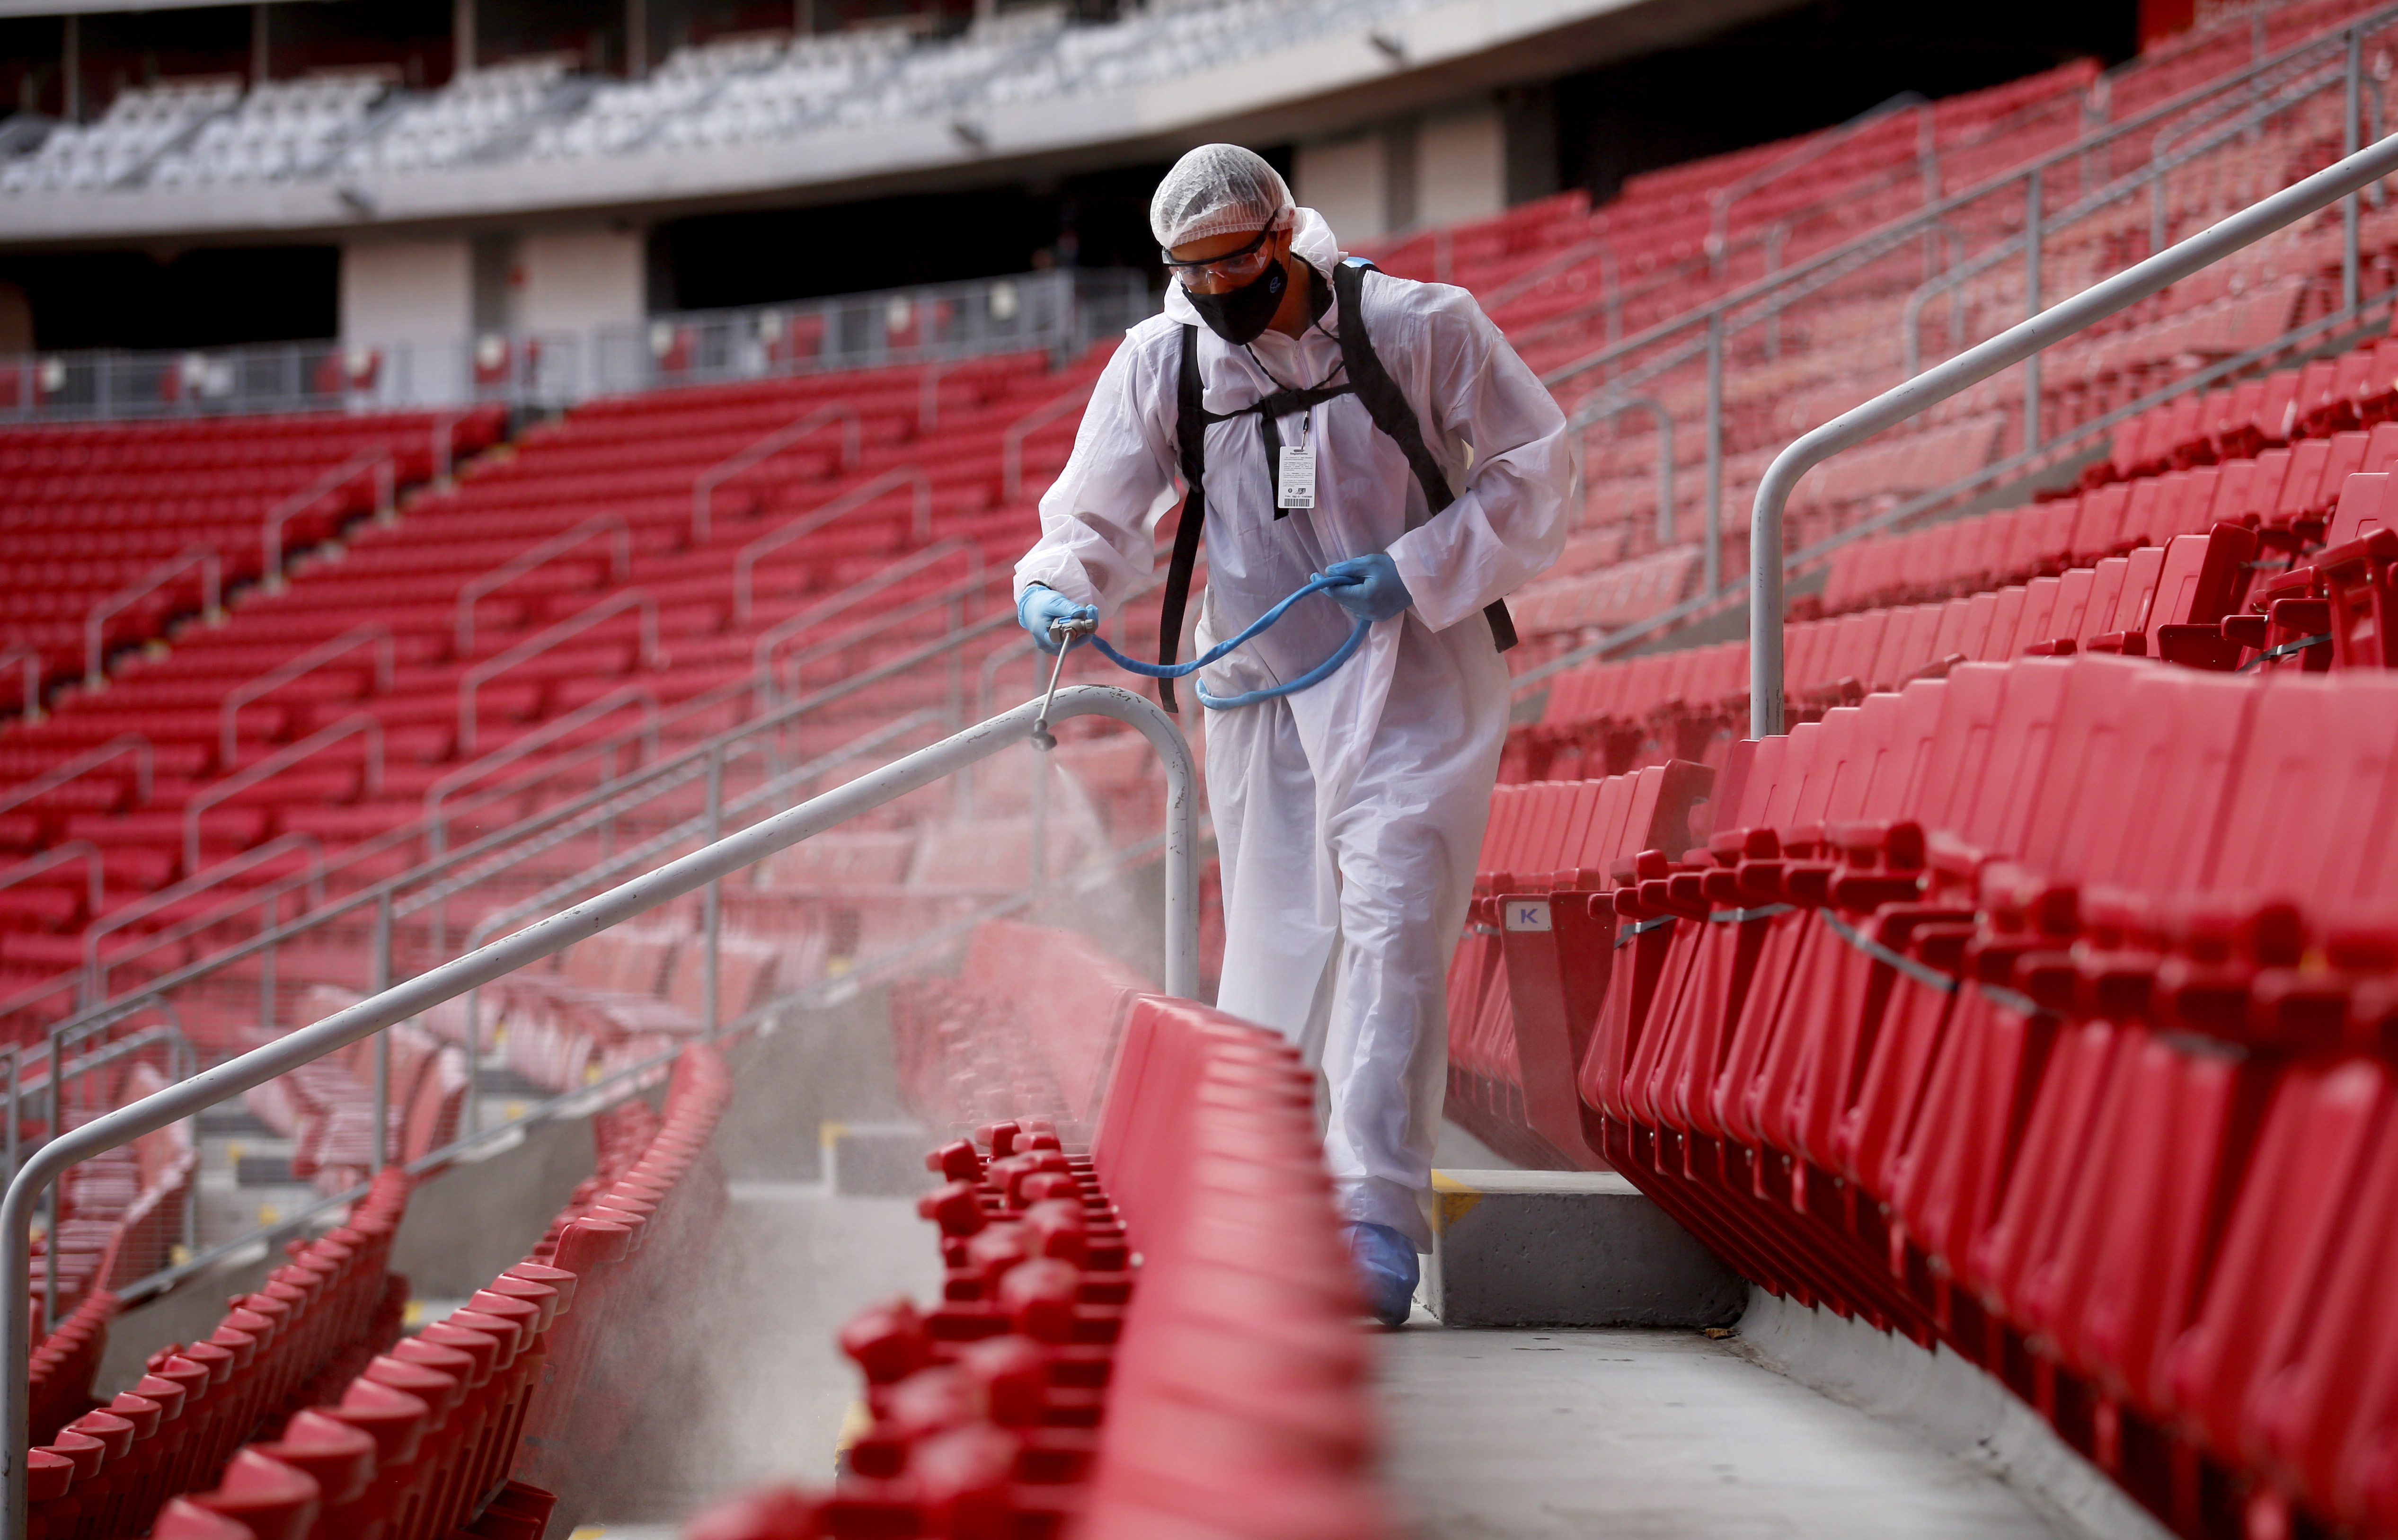 A Guadalajara staff member disinfects the stands before the start of a Mexican Apertura tournament football match between Guadalajara and Pachuca in Guadalajara, Jalisco state, Mexico, on August 29.